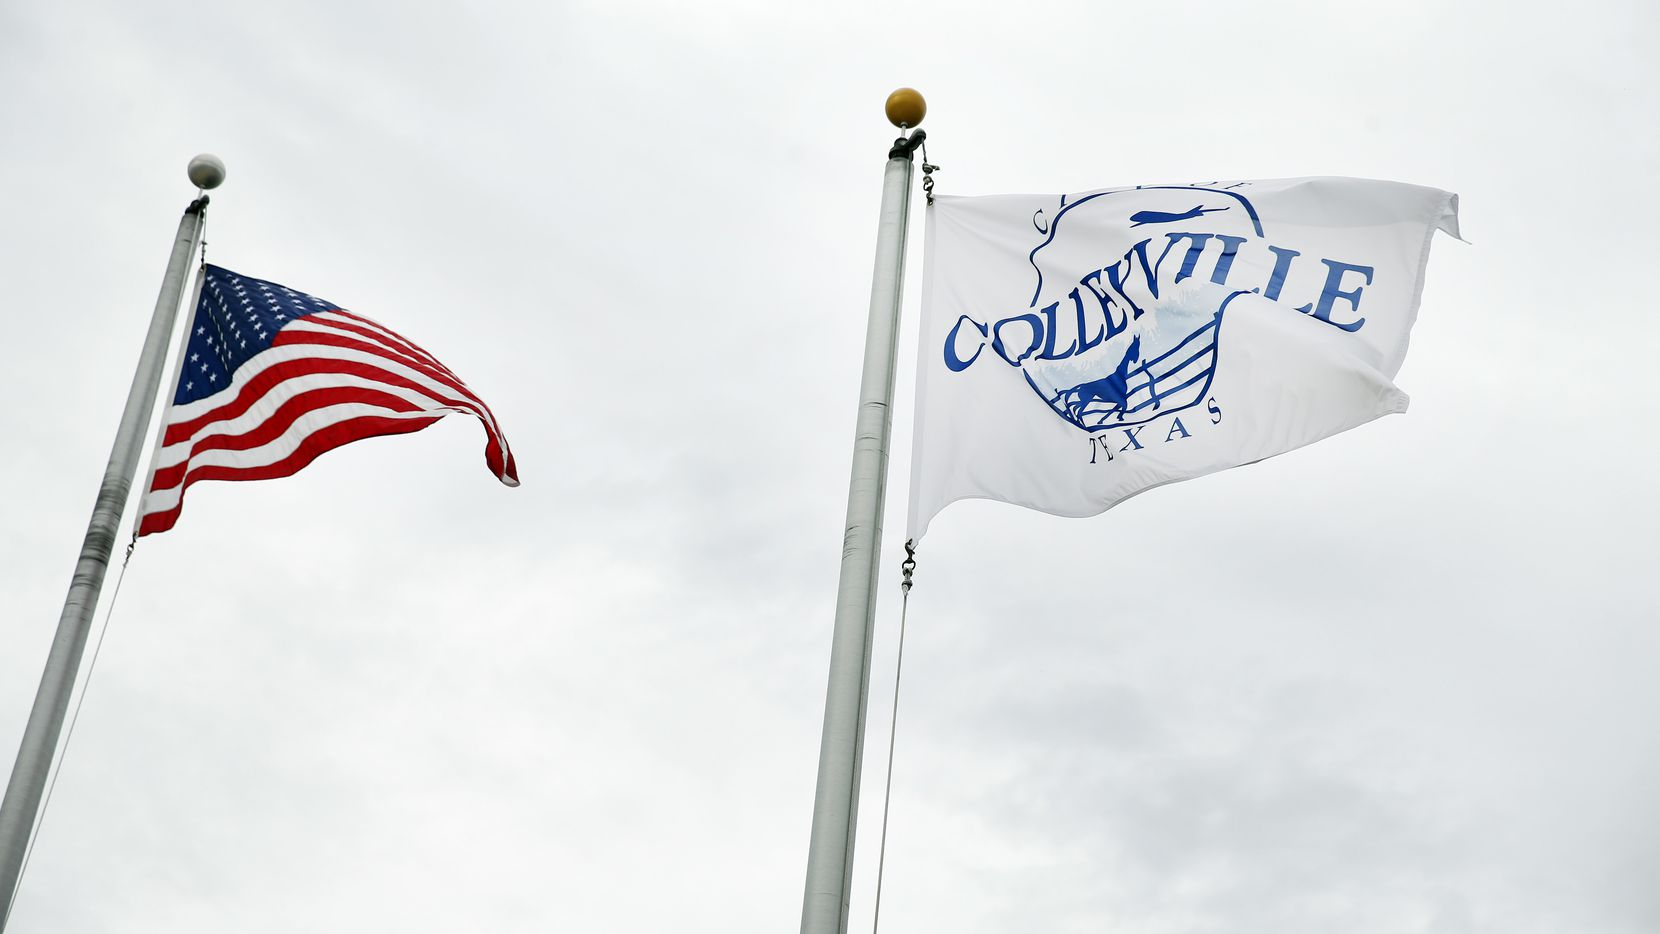 A City of Colleyville flags flies at the Colleyville Justice Center in Colleyville, Texas, Tuesday, June 23, 2020. (Tom Fox/The Dallas Morning News)